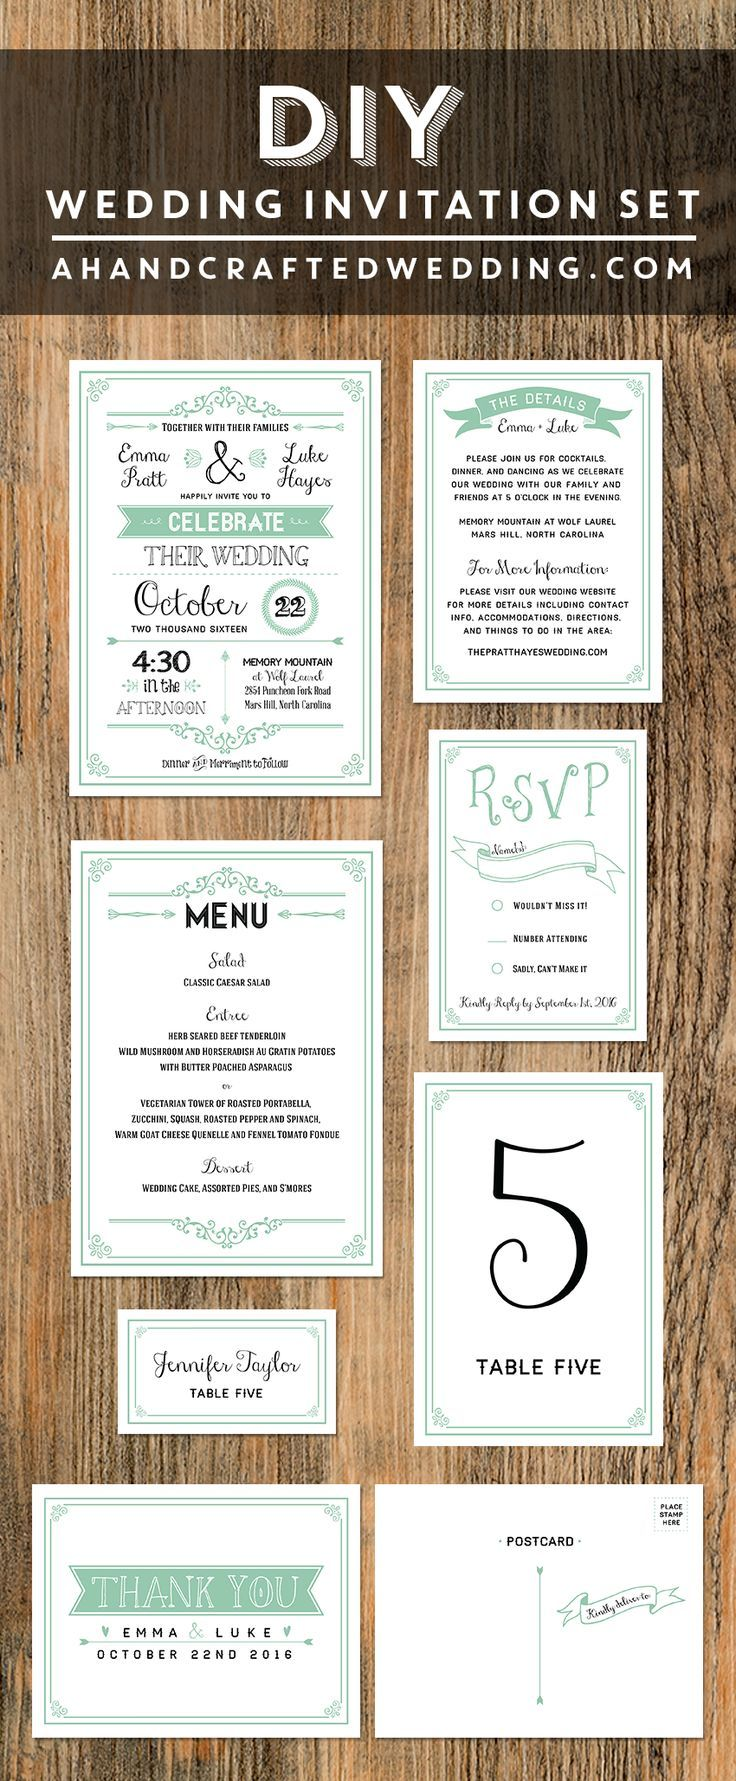 136 best diy wedding invitation ideas images on pinterest 136 best diy wedding invitation ideas images on pinterest letters desserts and floral designs stopboris Gallery